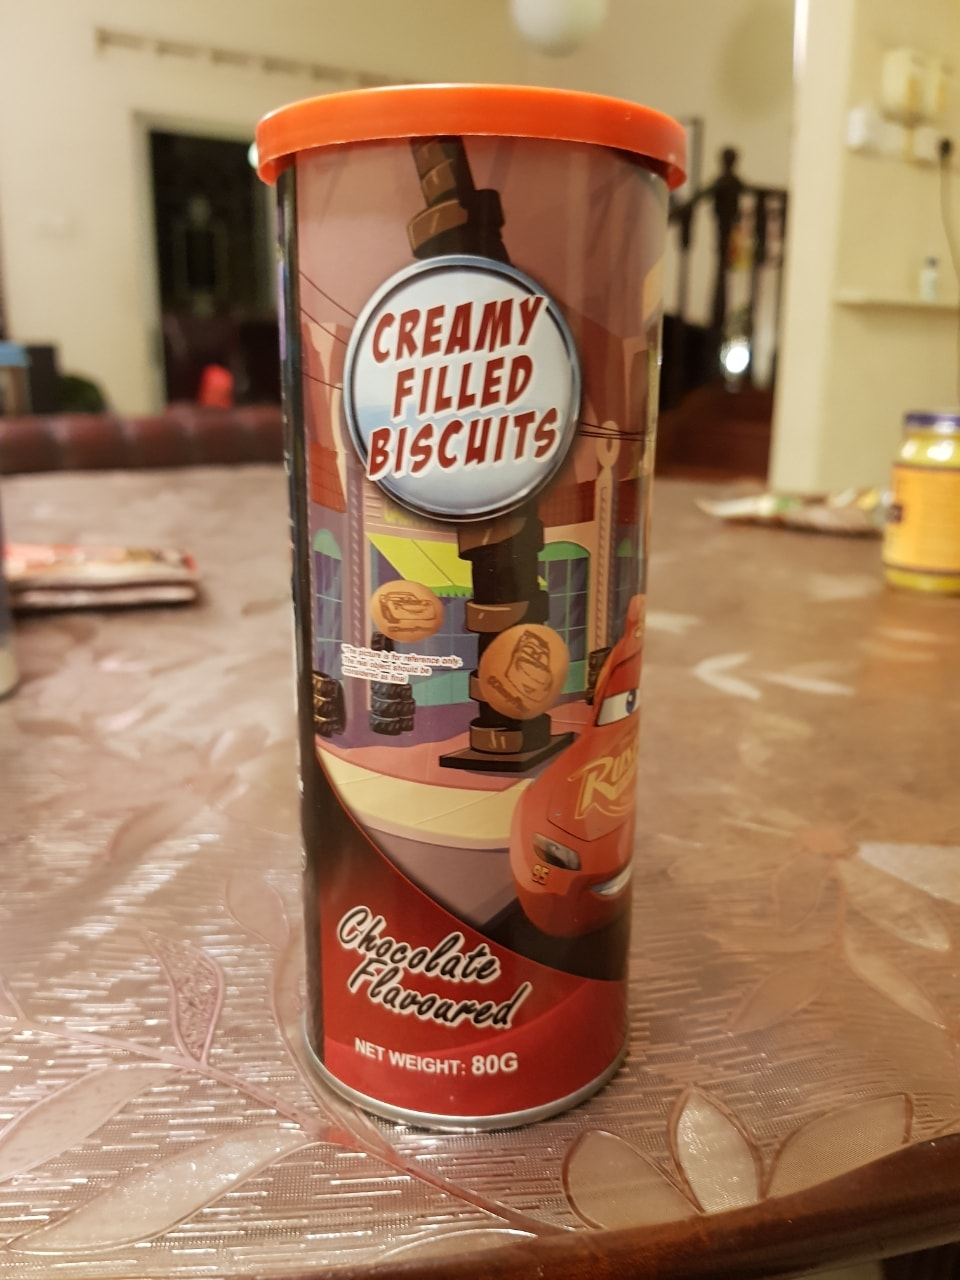 Creamy filled biscuits